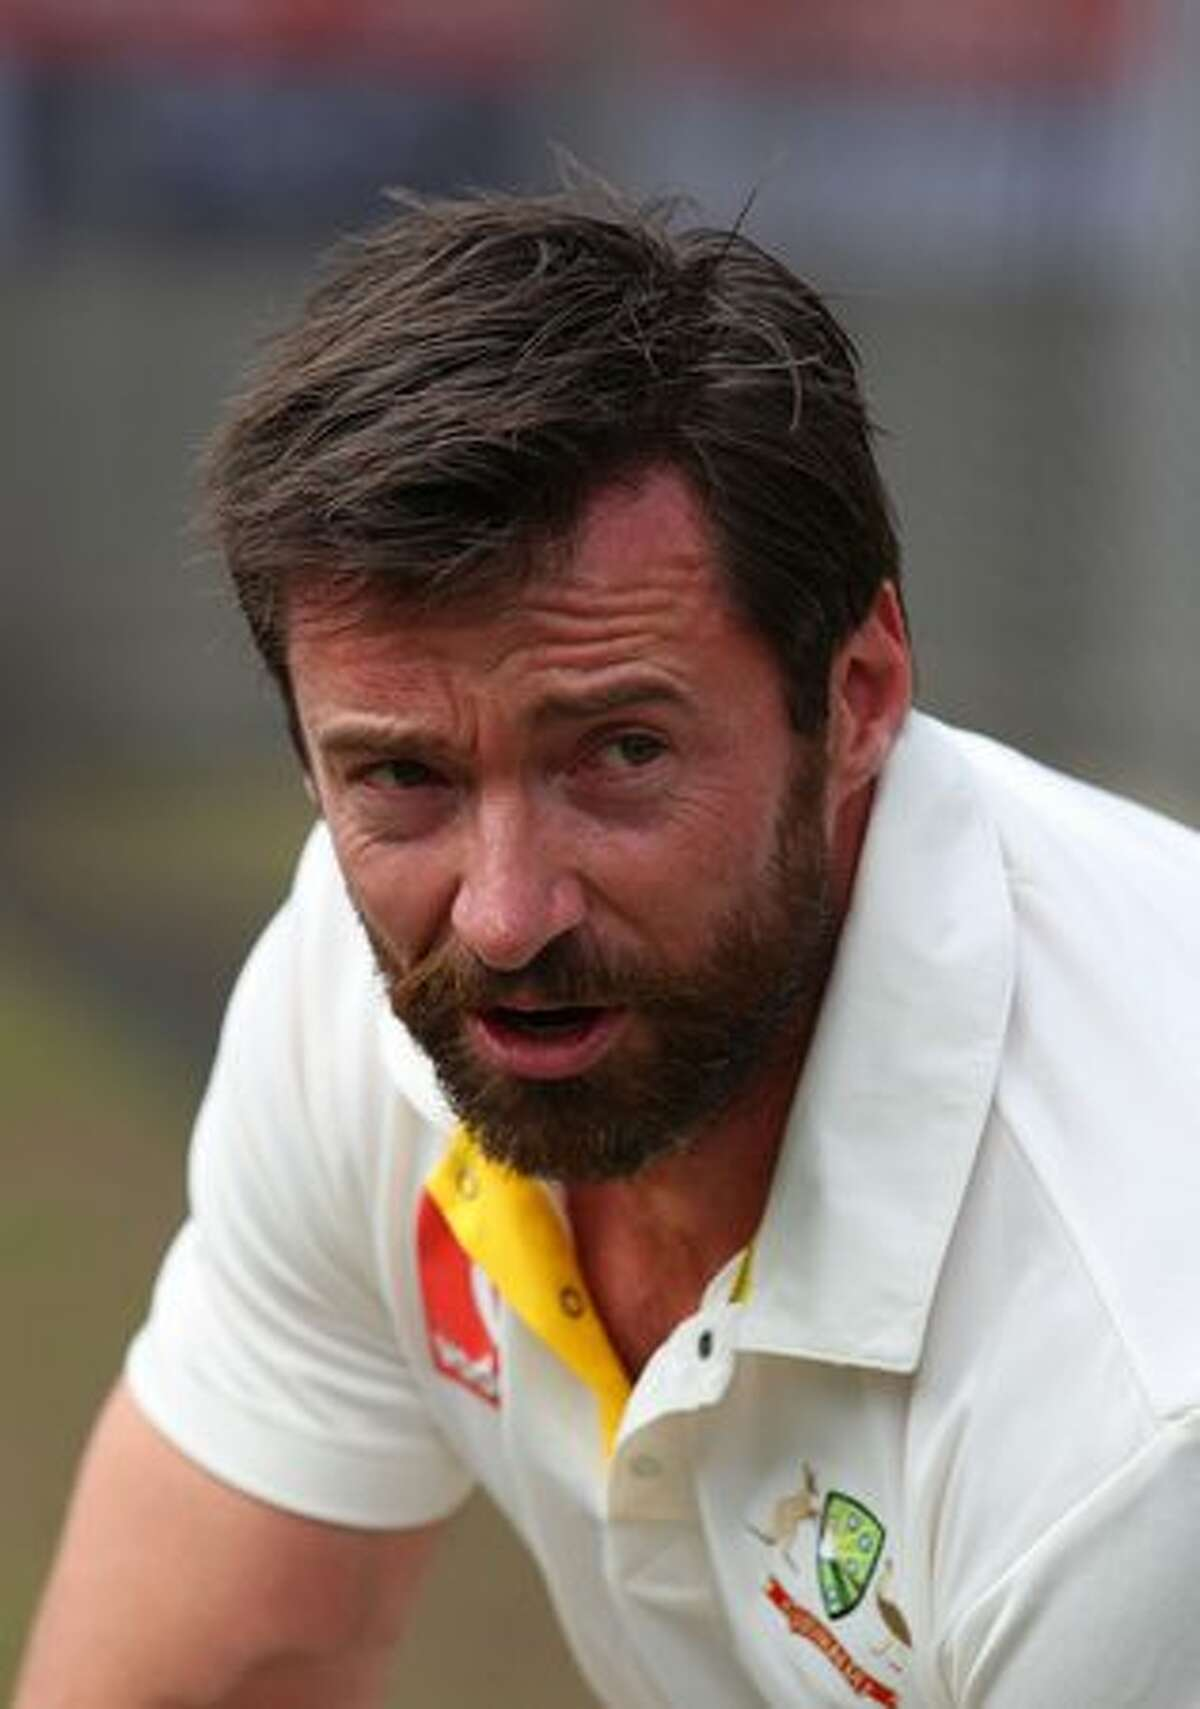 Actor Hugh Jackman looks on after playing cricket in the nets during day one of the Fourth Test match between Australia and England at Melbourne Cricket Ground in Melbourne, Australia.